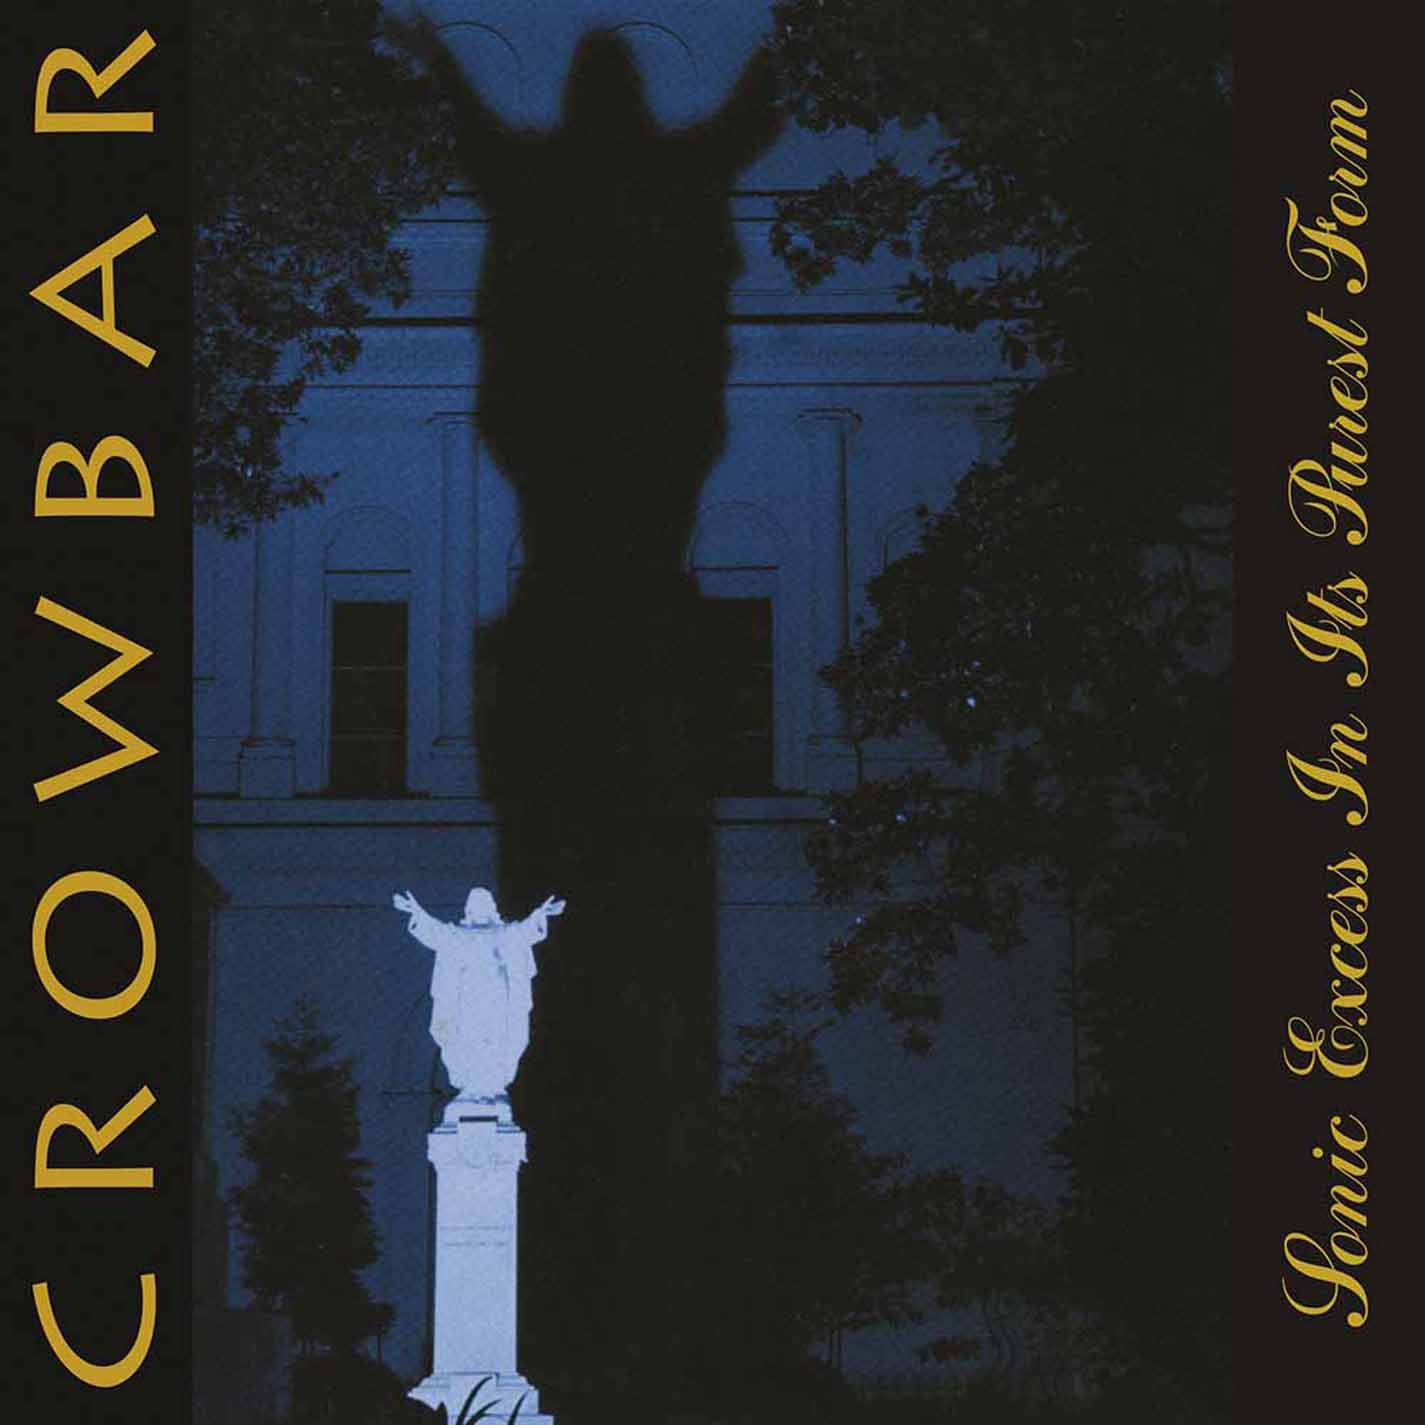 """A SCENE IN RETROSPECT: Crowbar – """"Sonic Excess In Its Purest Form"""""""